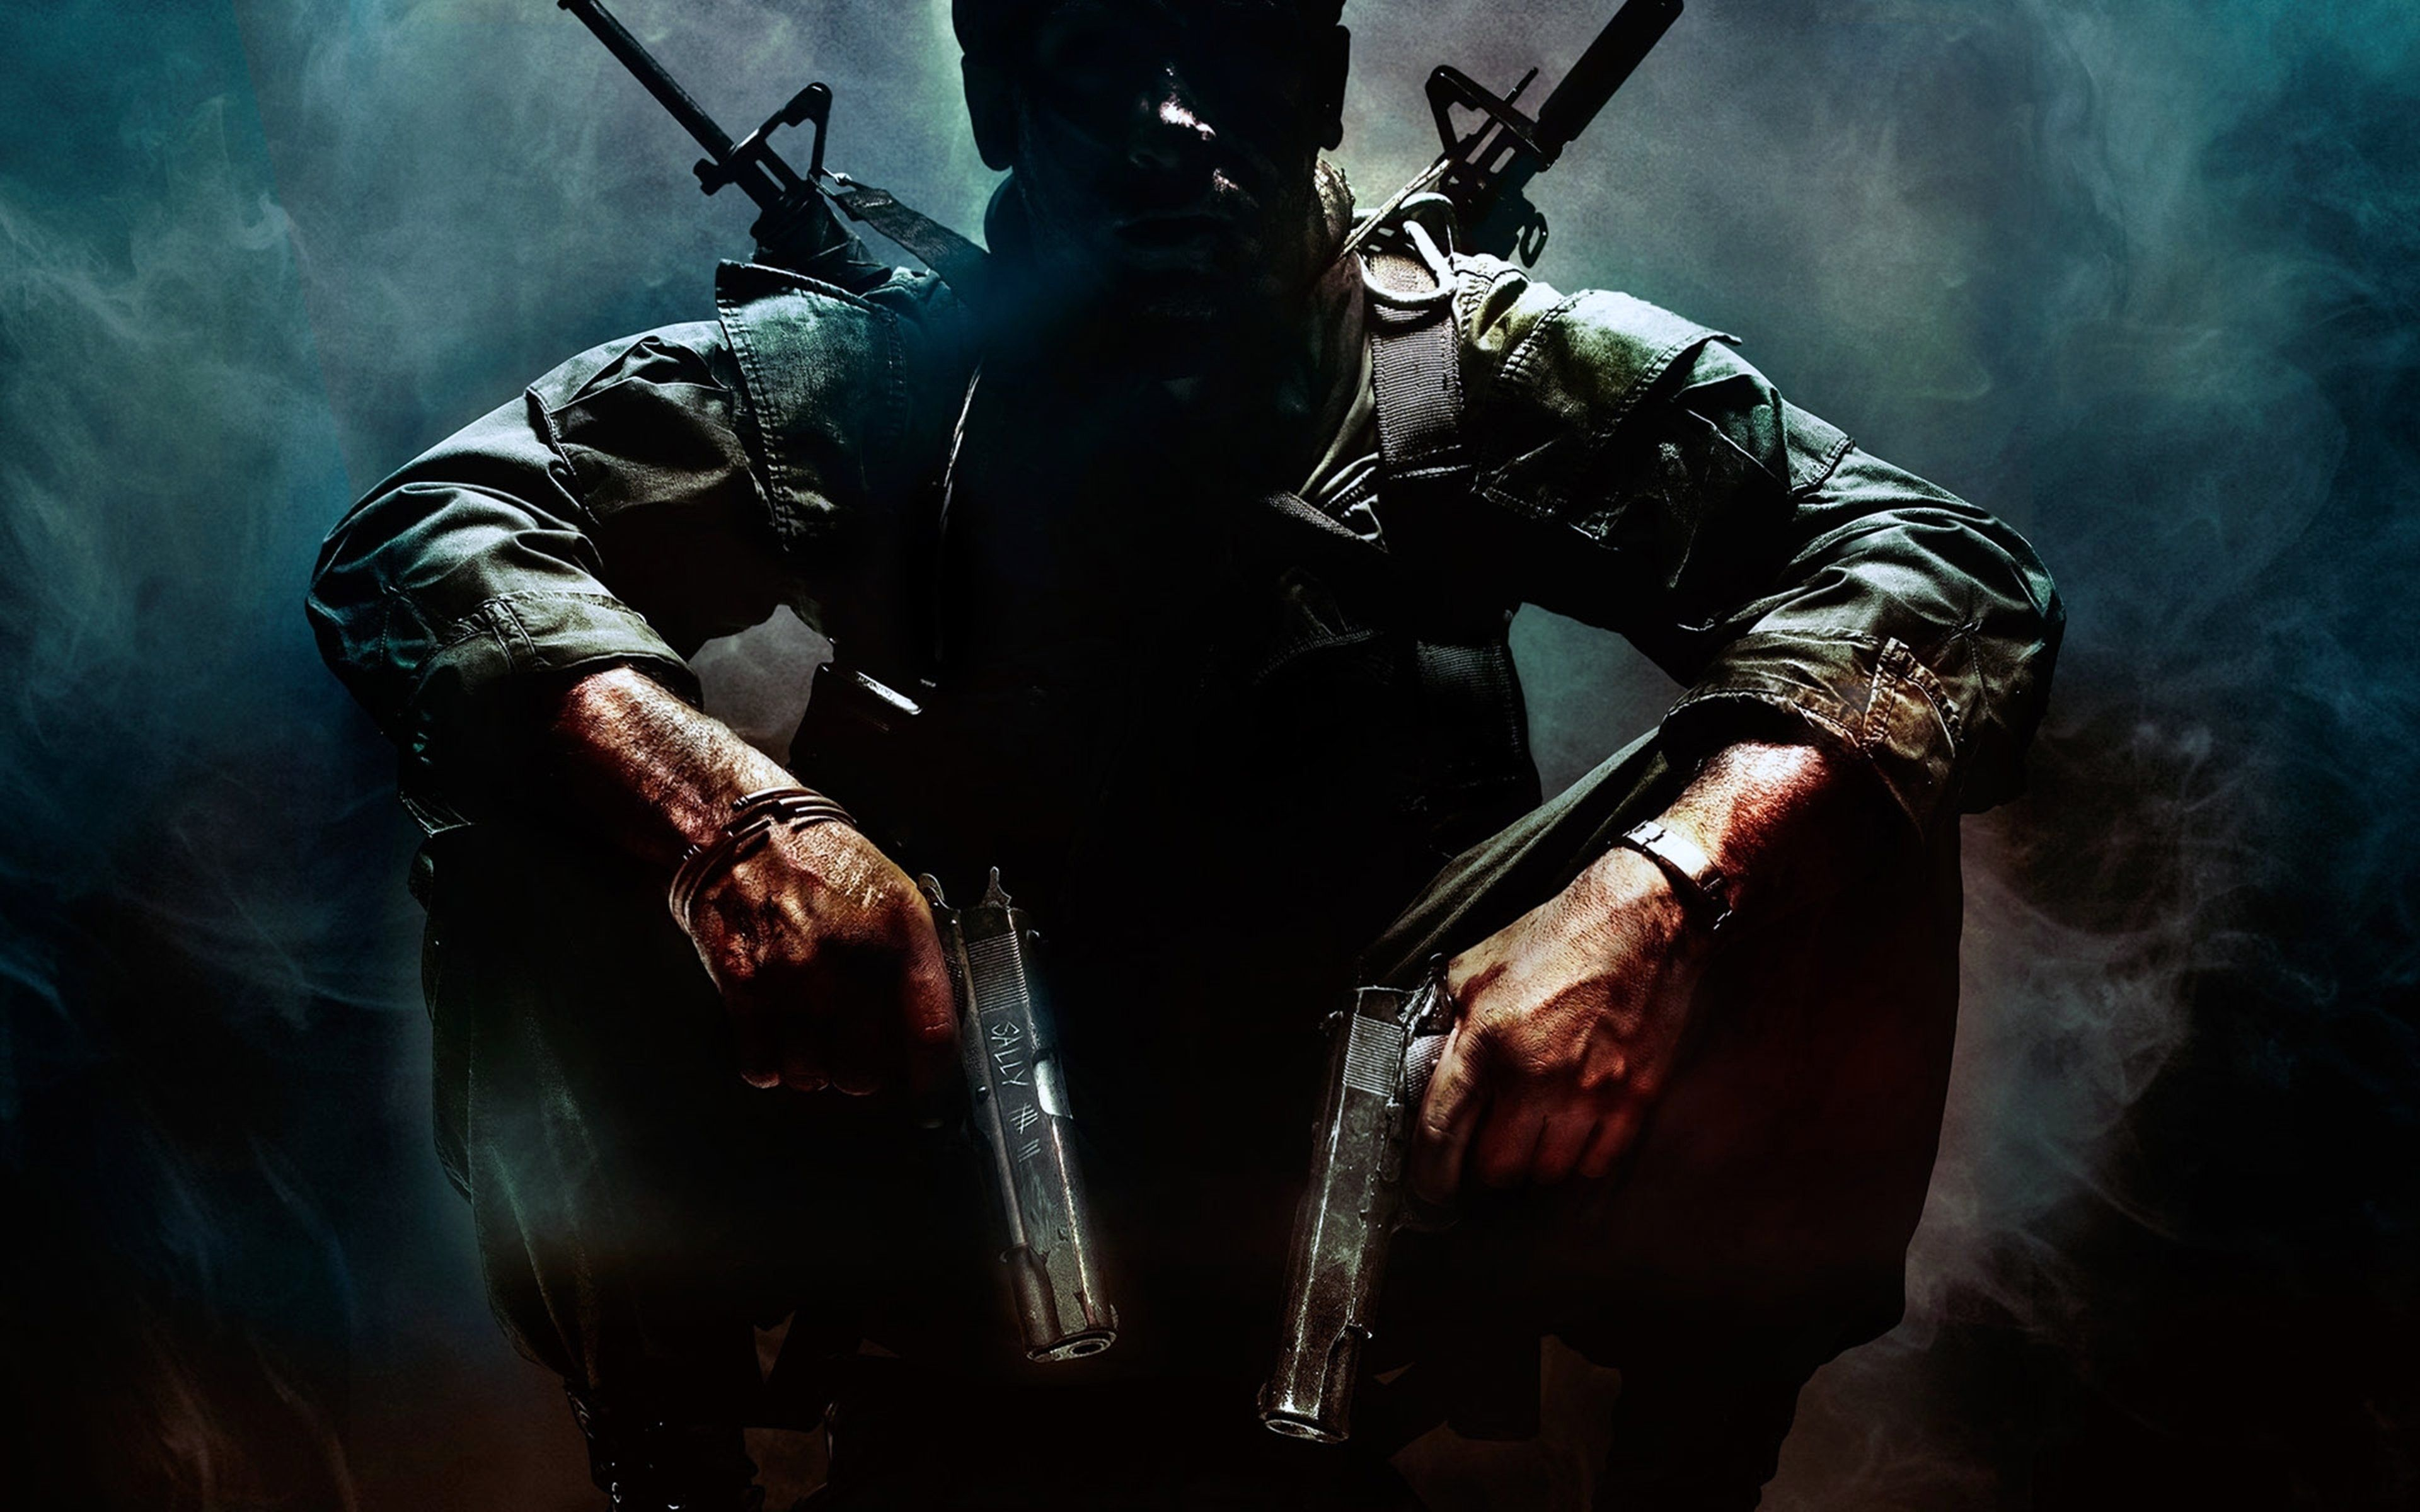 Military Soldier Fighter Pistols Struggle Valor Gangs War Guns Wallpaper Best Gaming Wallpapers Gaming Wallpapers Call Of Duty